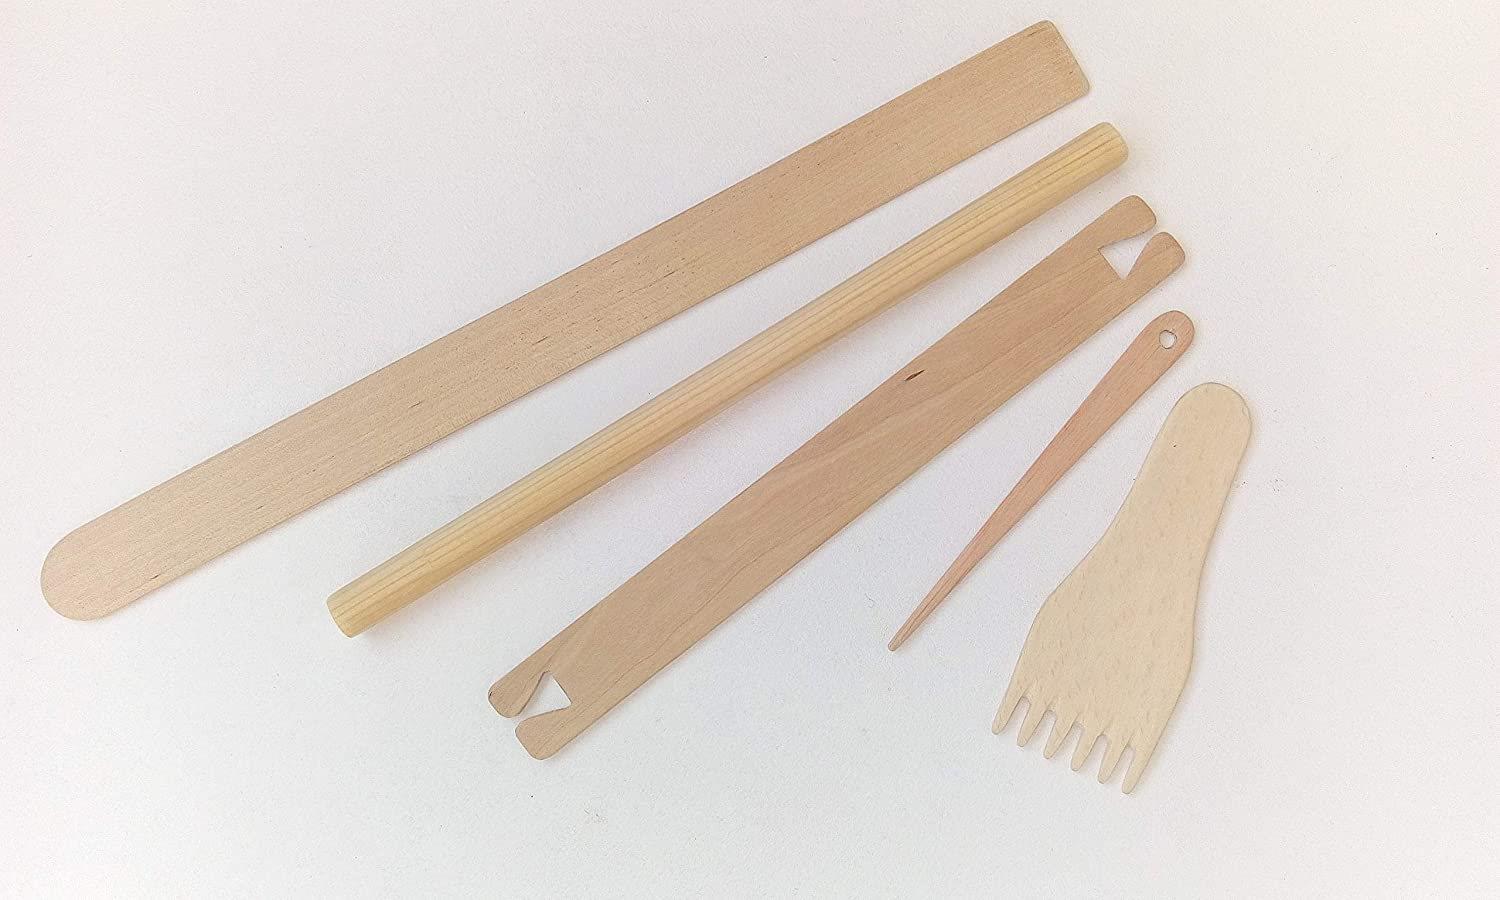 Weaving Tools Kit For Loom Included Tapestry Comb Wooden Needle Stick Shed Weaving Shuttle Wood Dowel Hanging